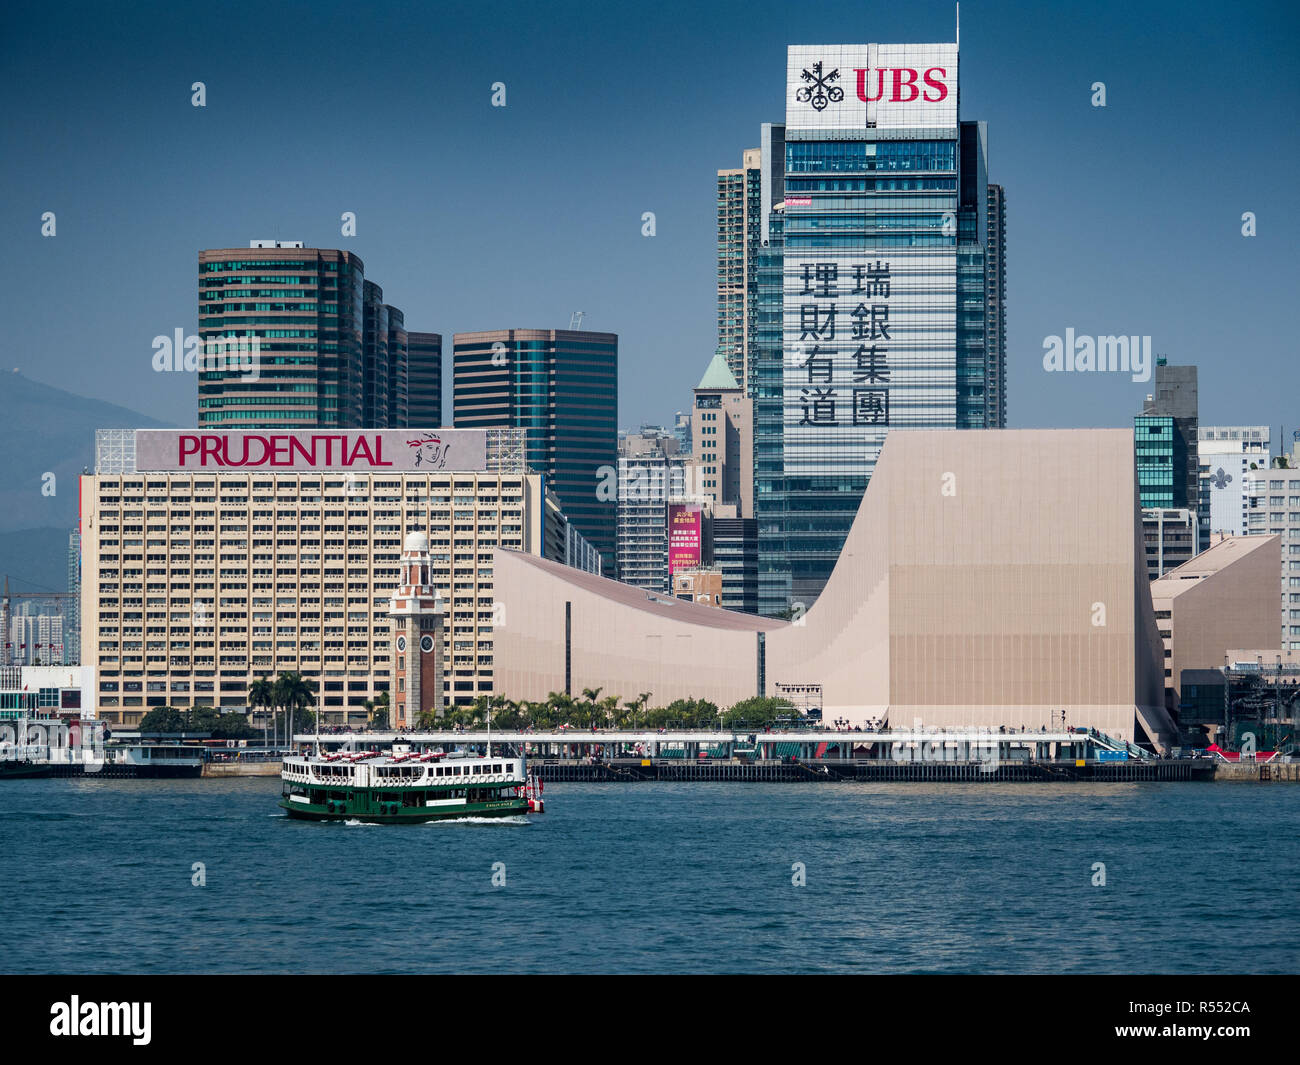 Hong Kong - Star Ferry sails in front of large UBS and Prudential adverts on the Kowloon side of Victoria Harbour - Stock Image